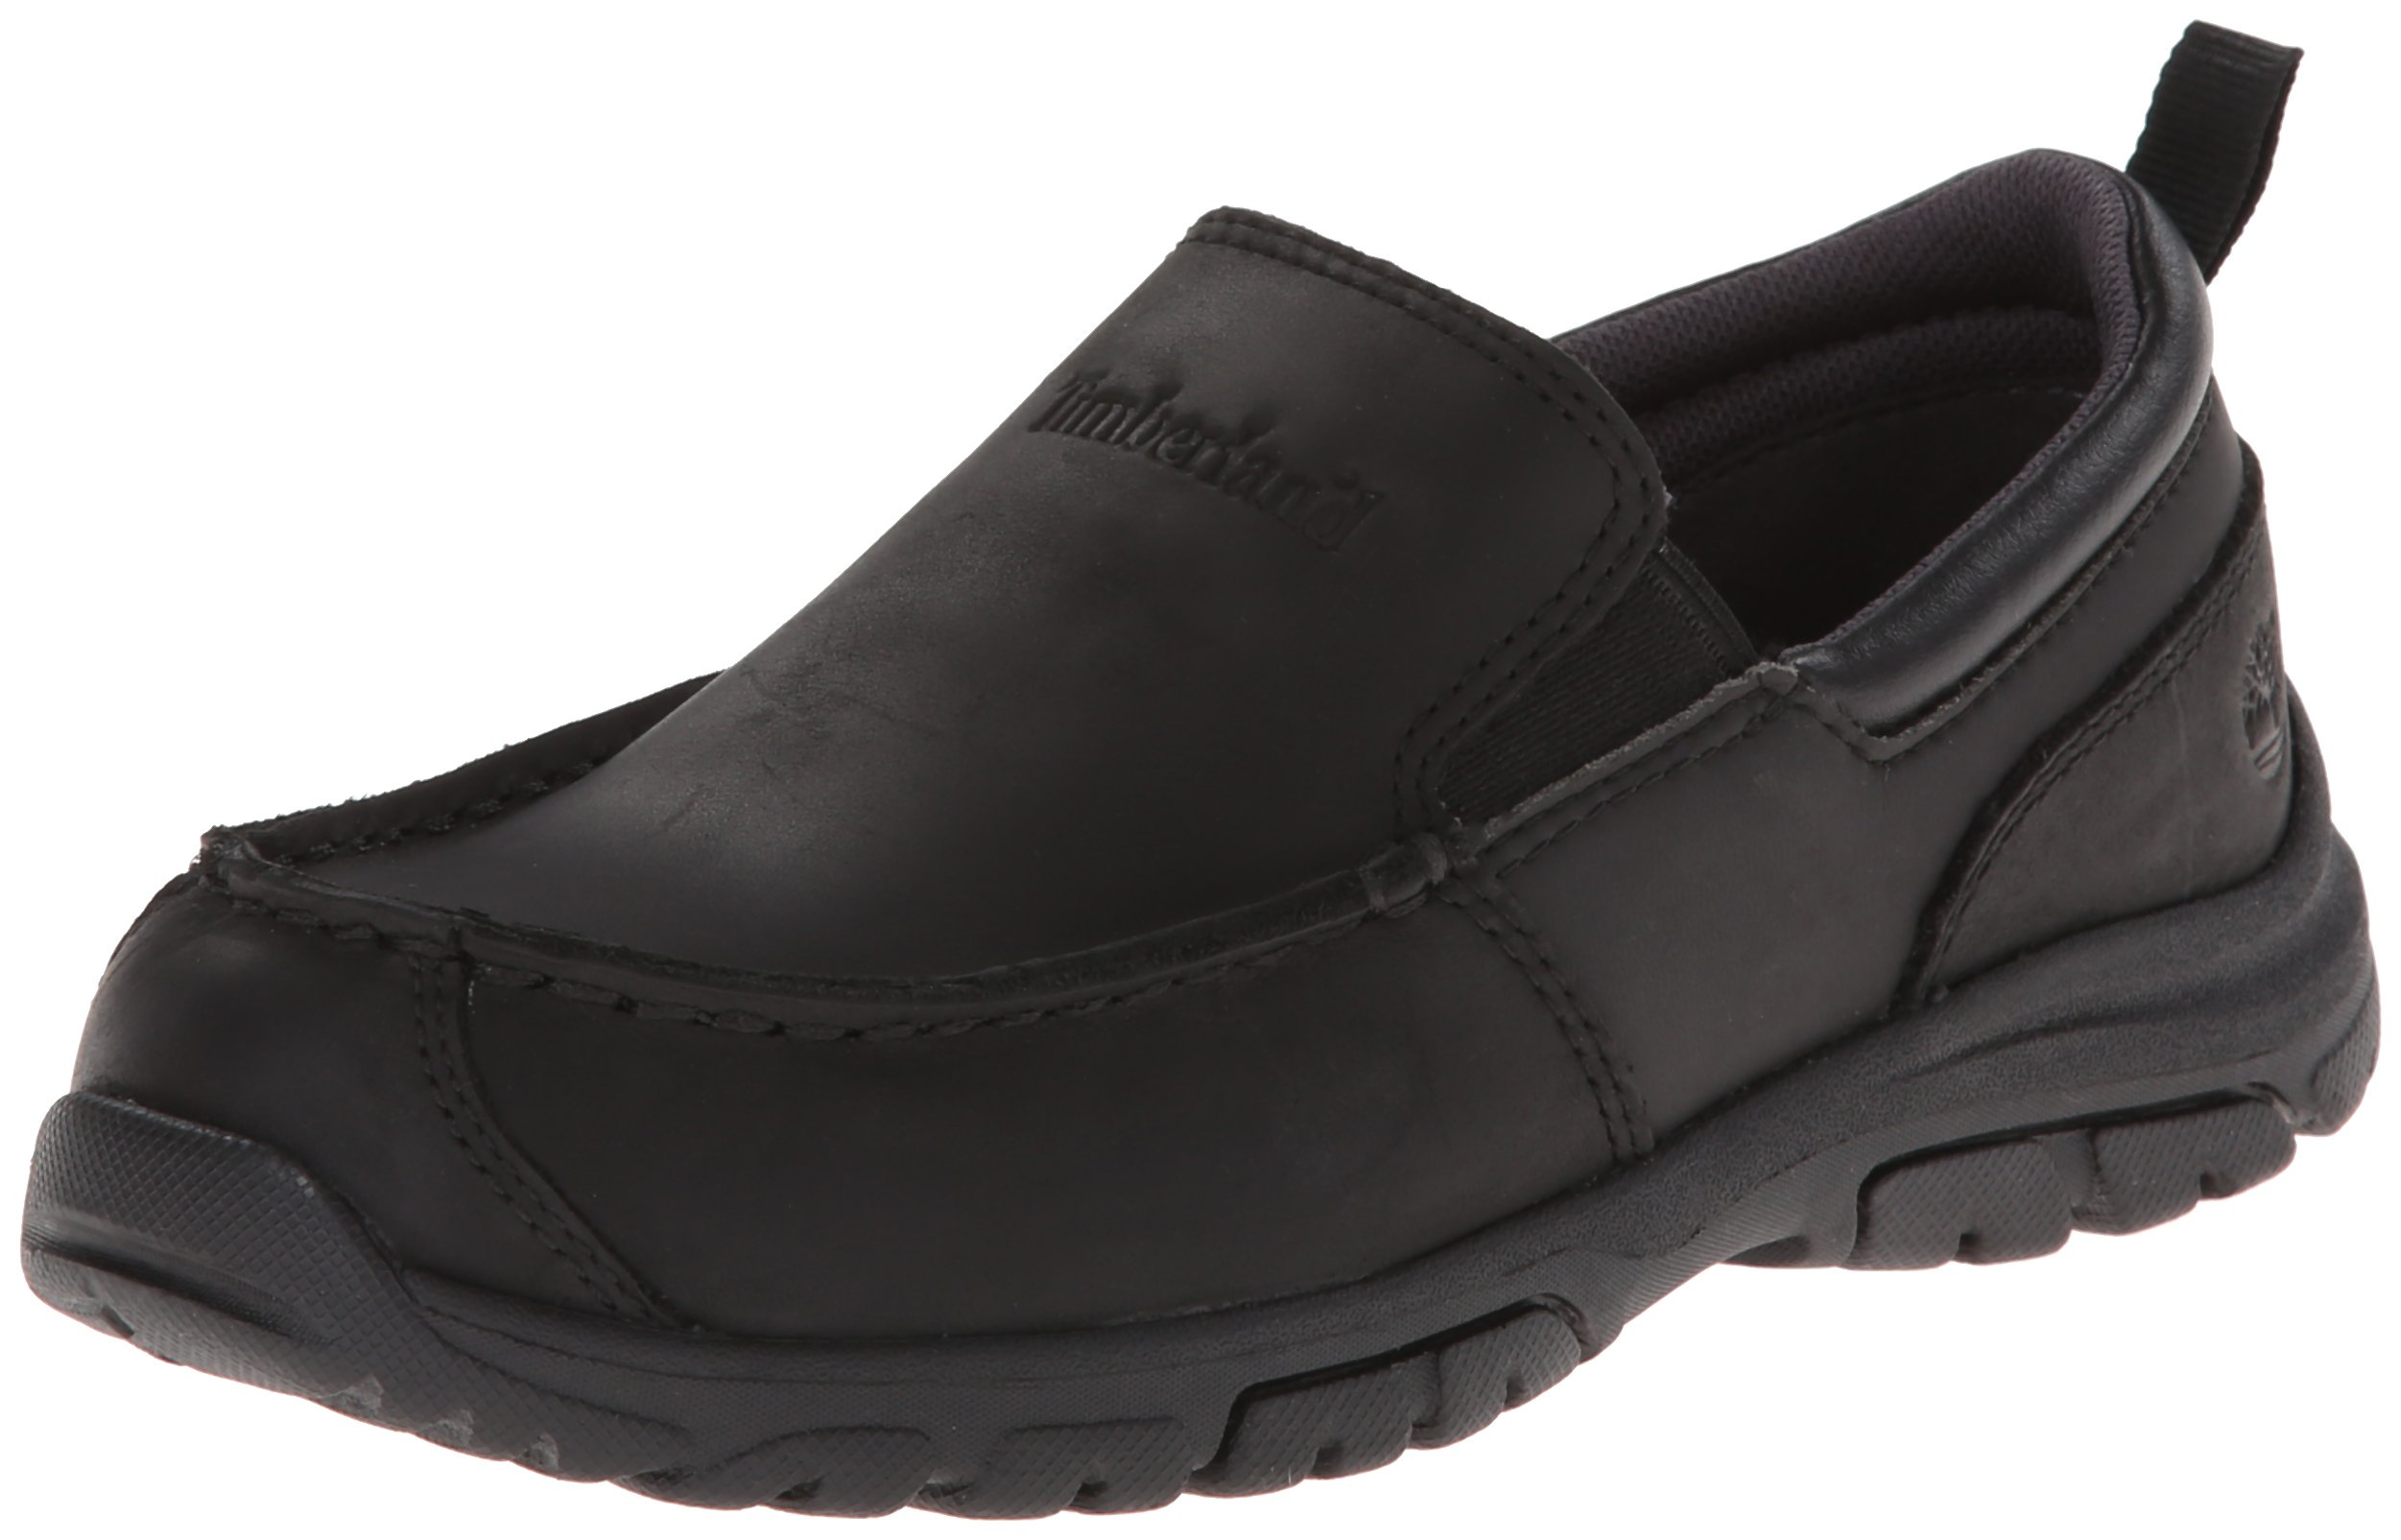 Timberland Discovery Pass Moc Toe Moc Toe Slip-On (Toddler/Little Kid/Big Kid),Black,7.5 M US Toddler